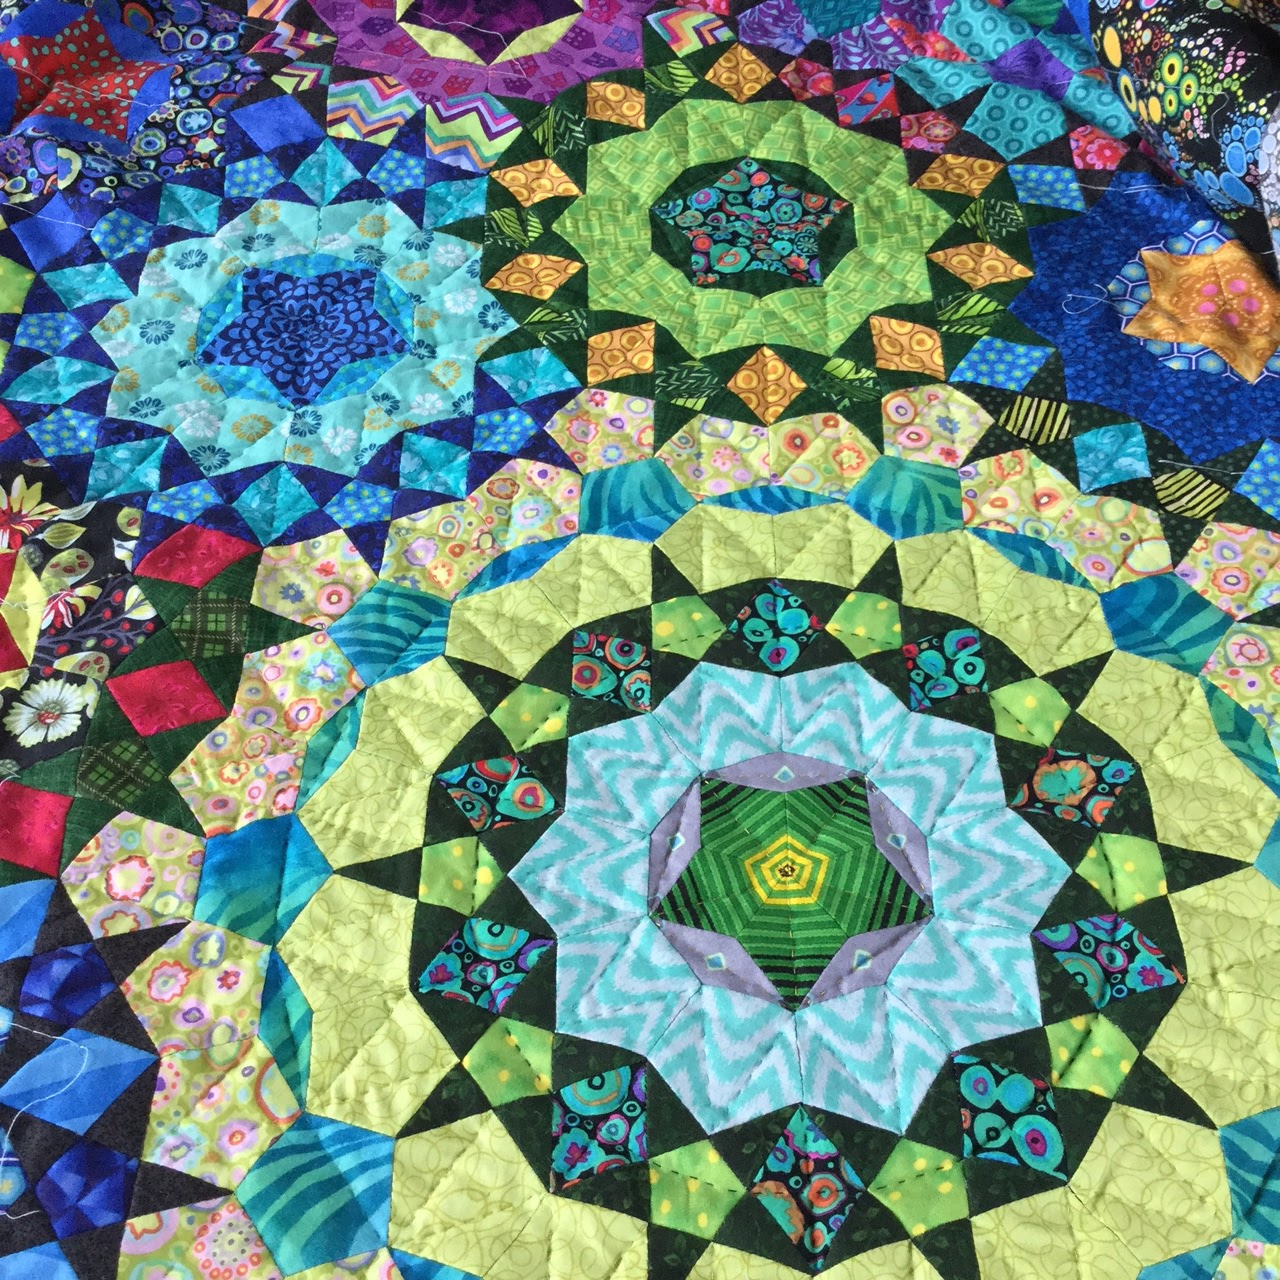 Wendy's quilts and more: Hand quilting my la passacaglia quilt